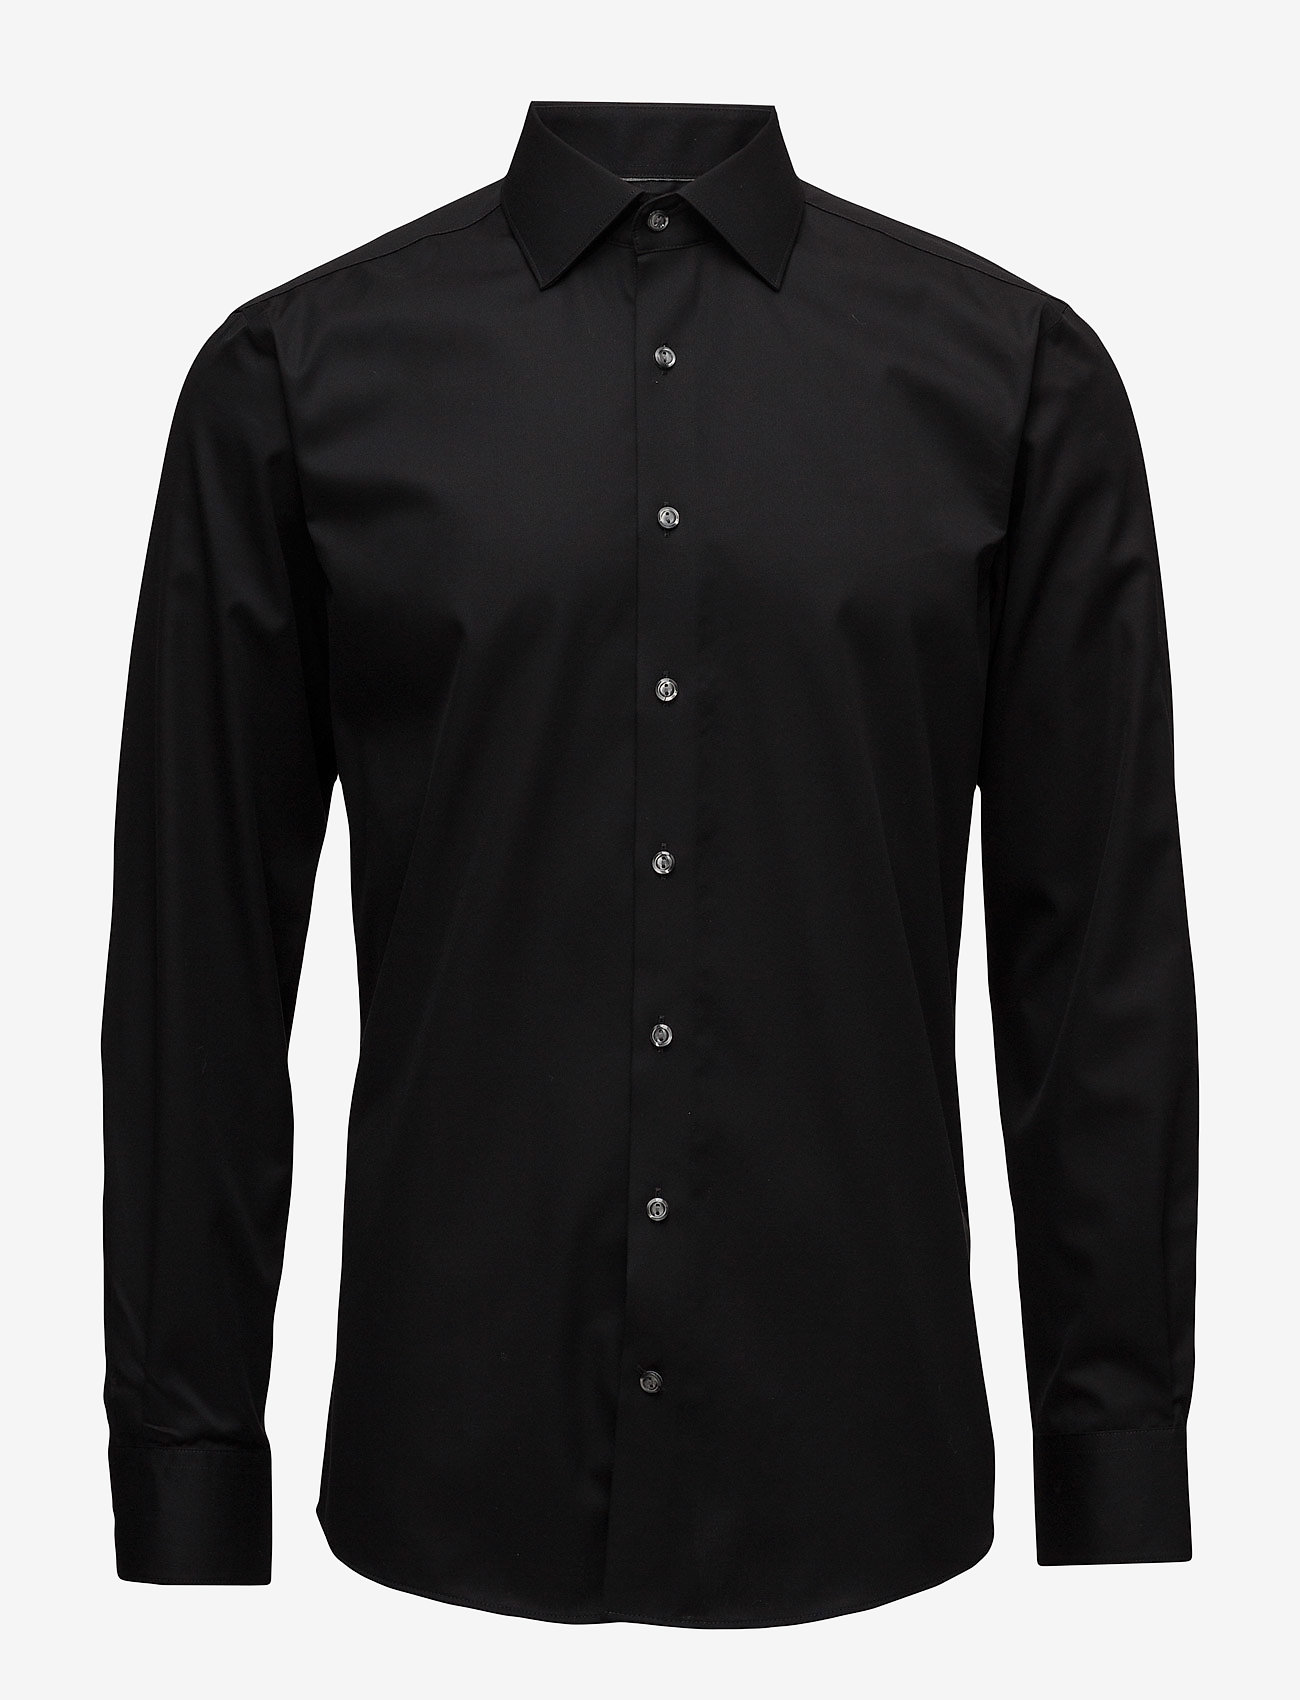 Lindbergh - Plain fine twill shirt,WF - basic shirts - black